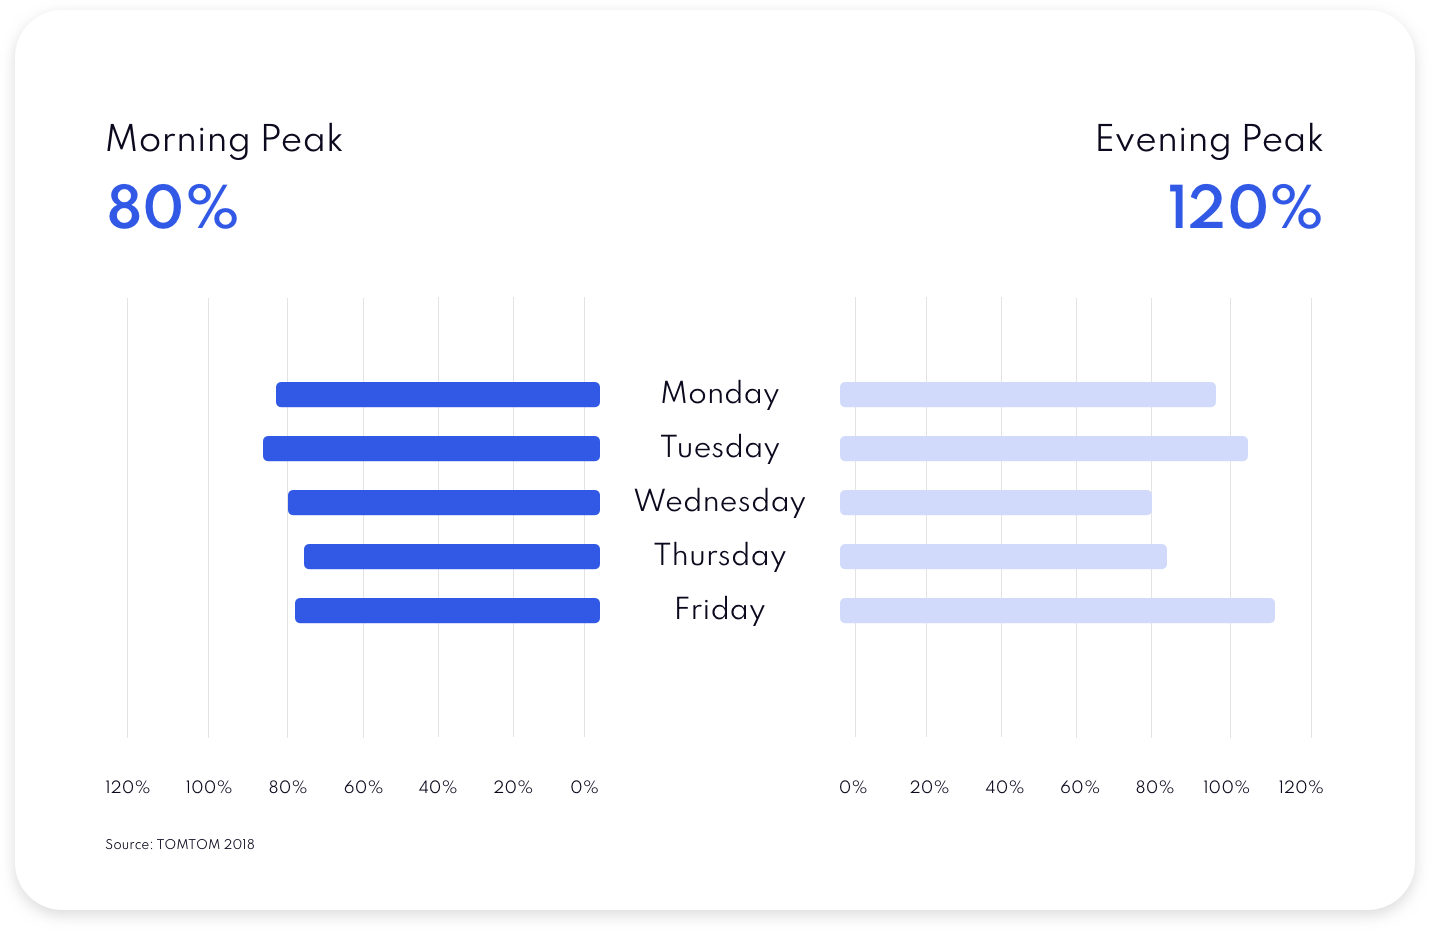 Statistics for traffic congestion during the week